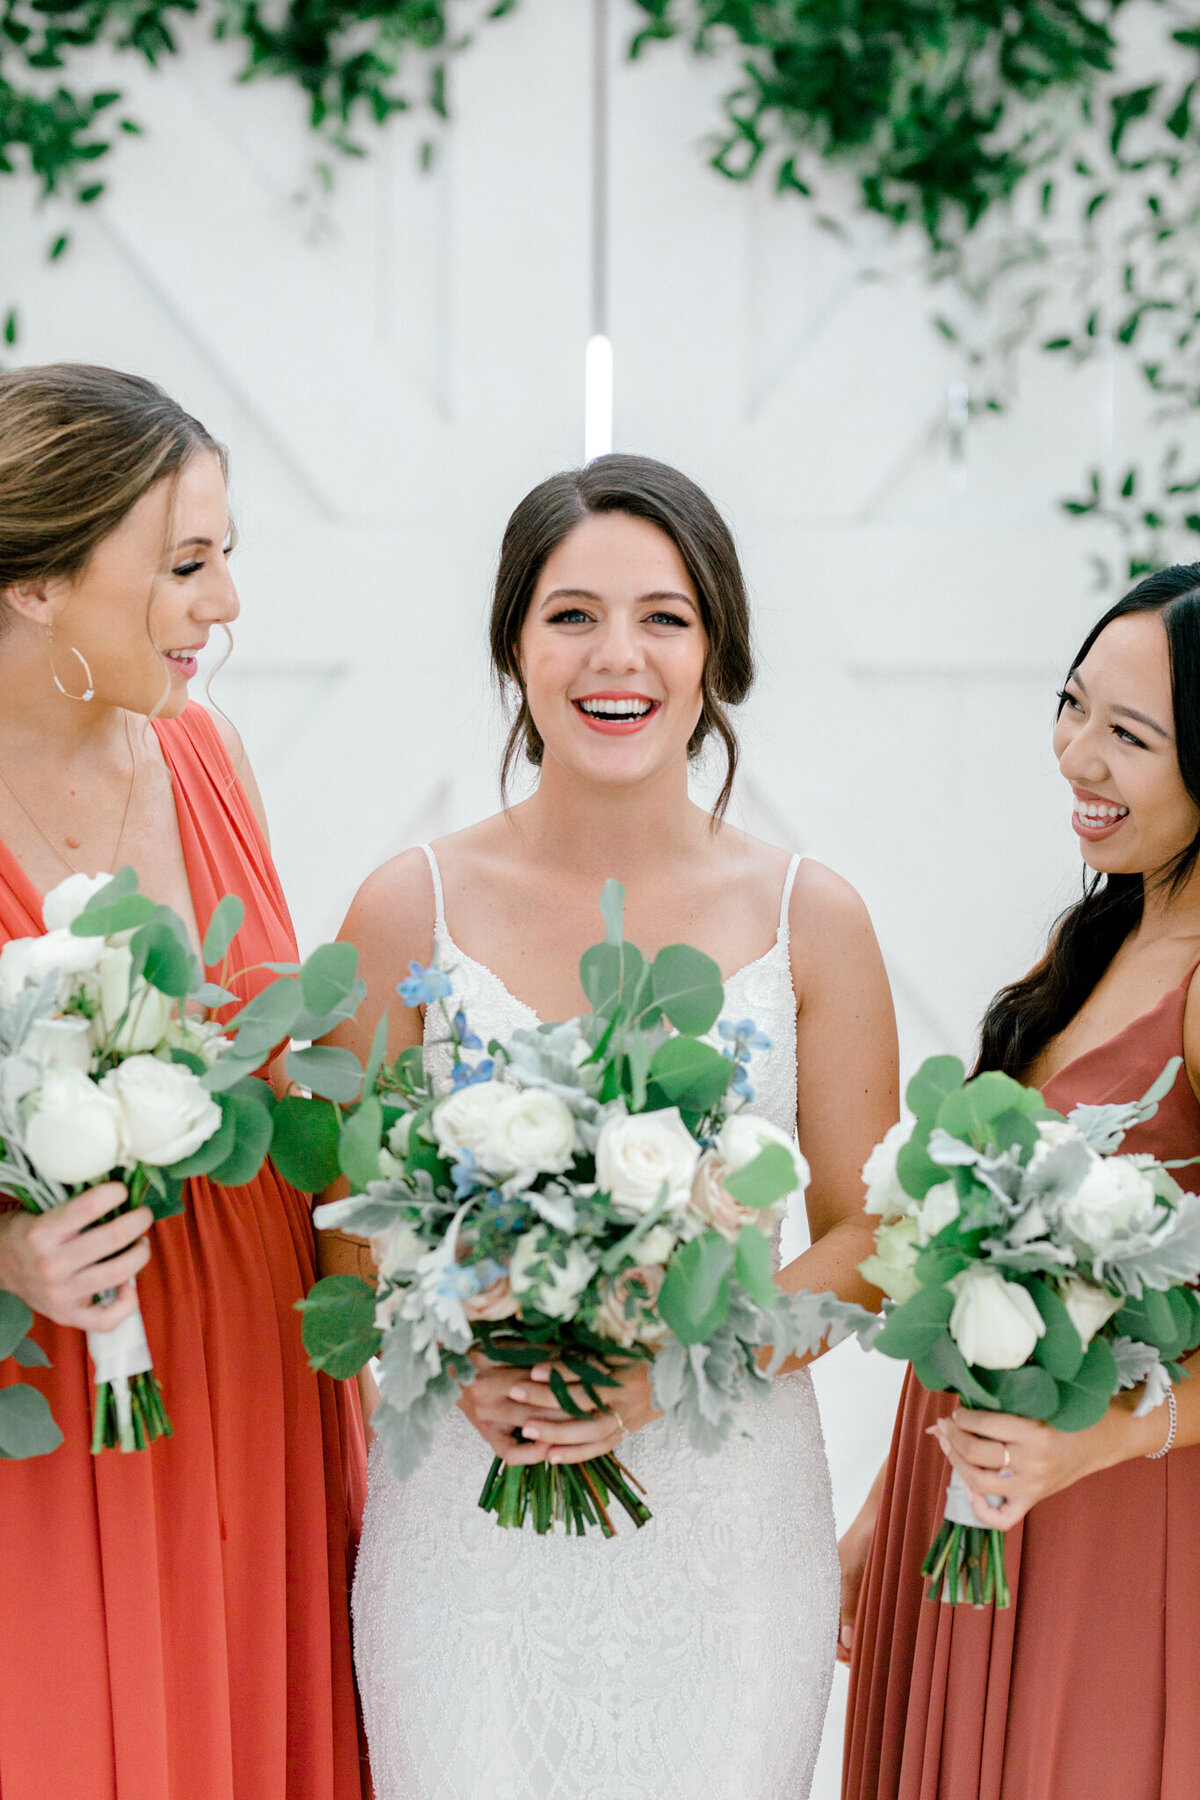 Anna & Billy's Wedding at The Nest at Ruth Farms | Dallas Wedding Photographer | Sami Kathryn Photography-121